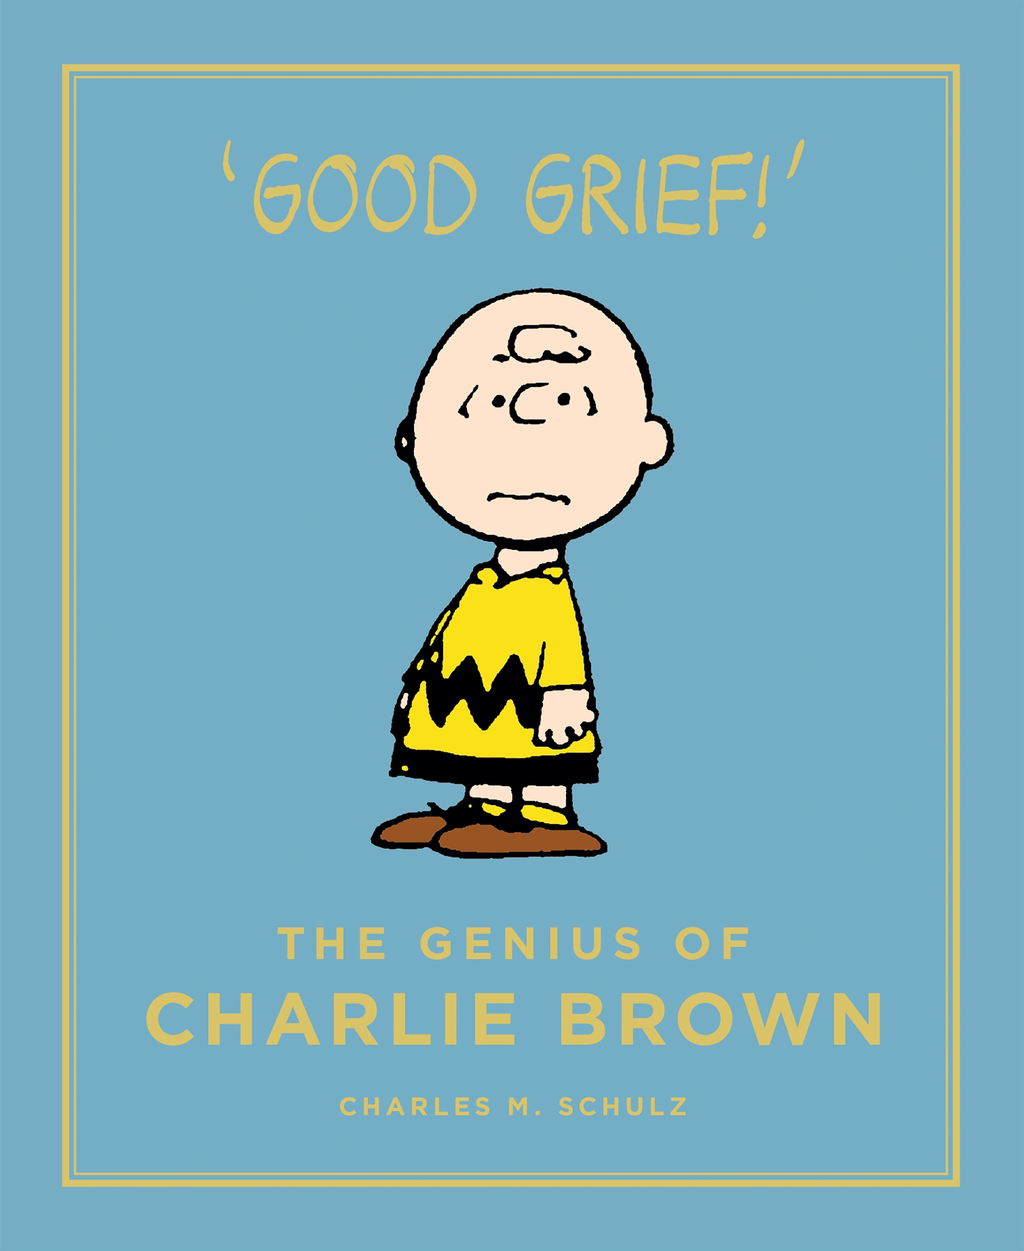 The Genius of Charlie Brown Peanuts Guide to Life